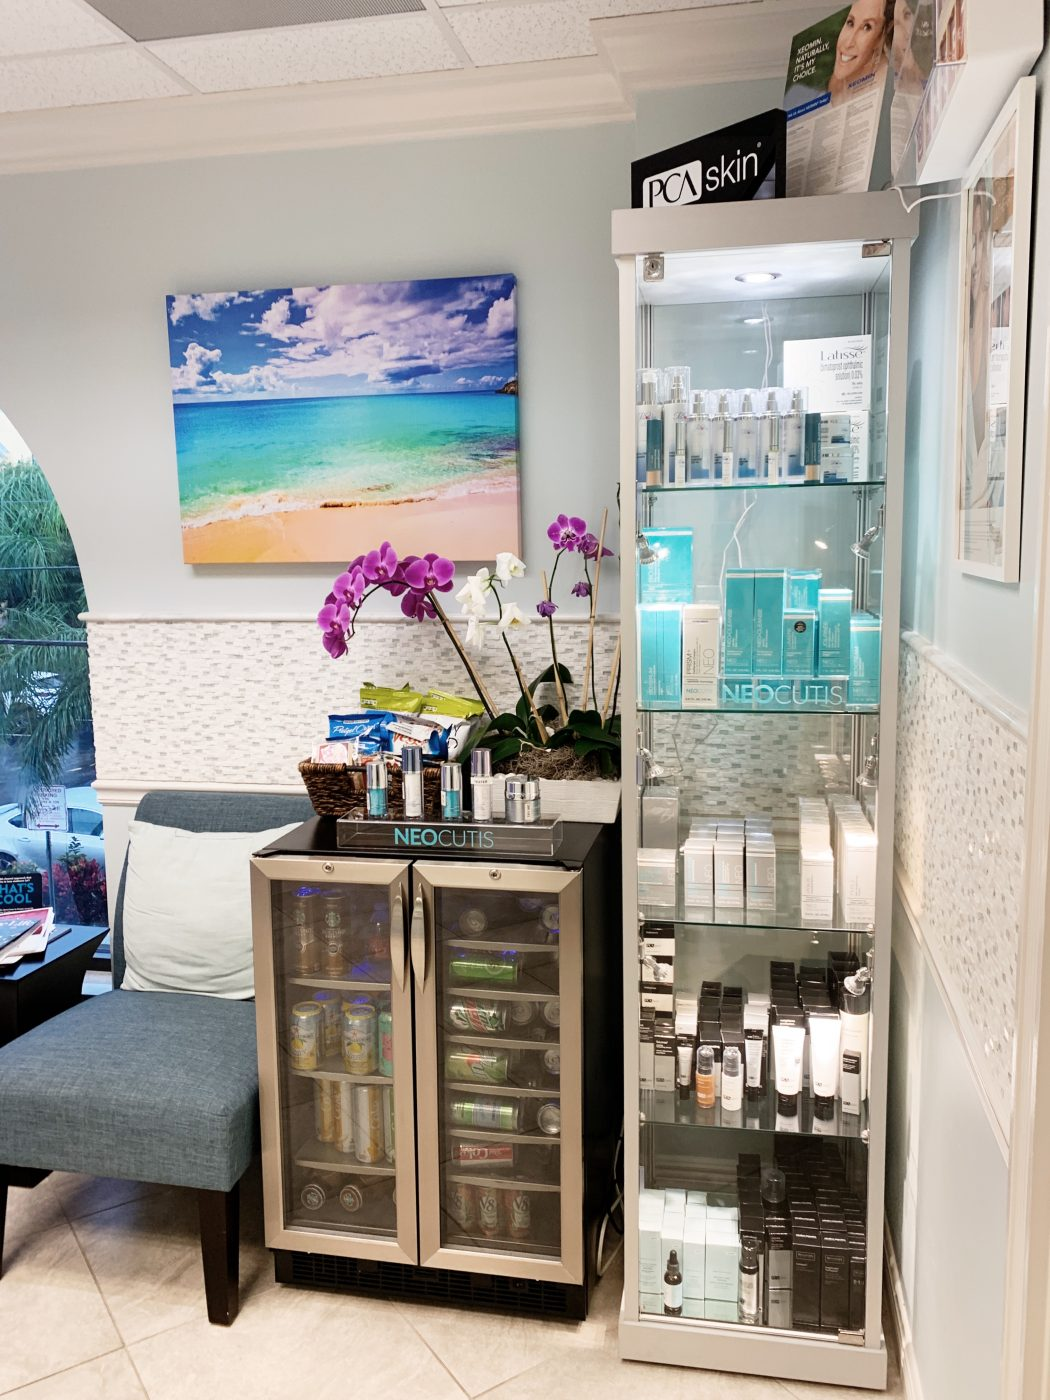 Pura Vida Medical Spa in Naples, FL